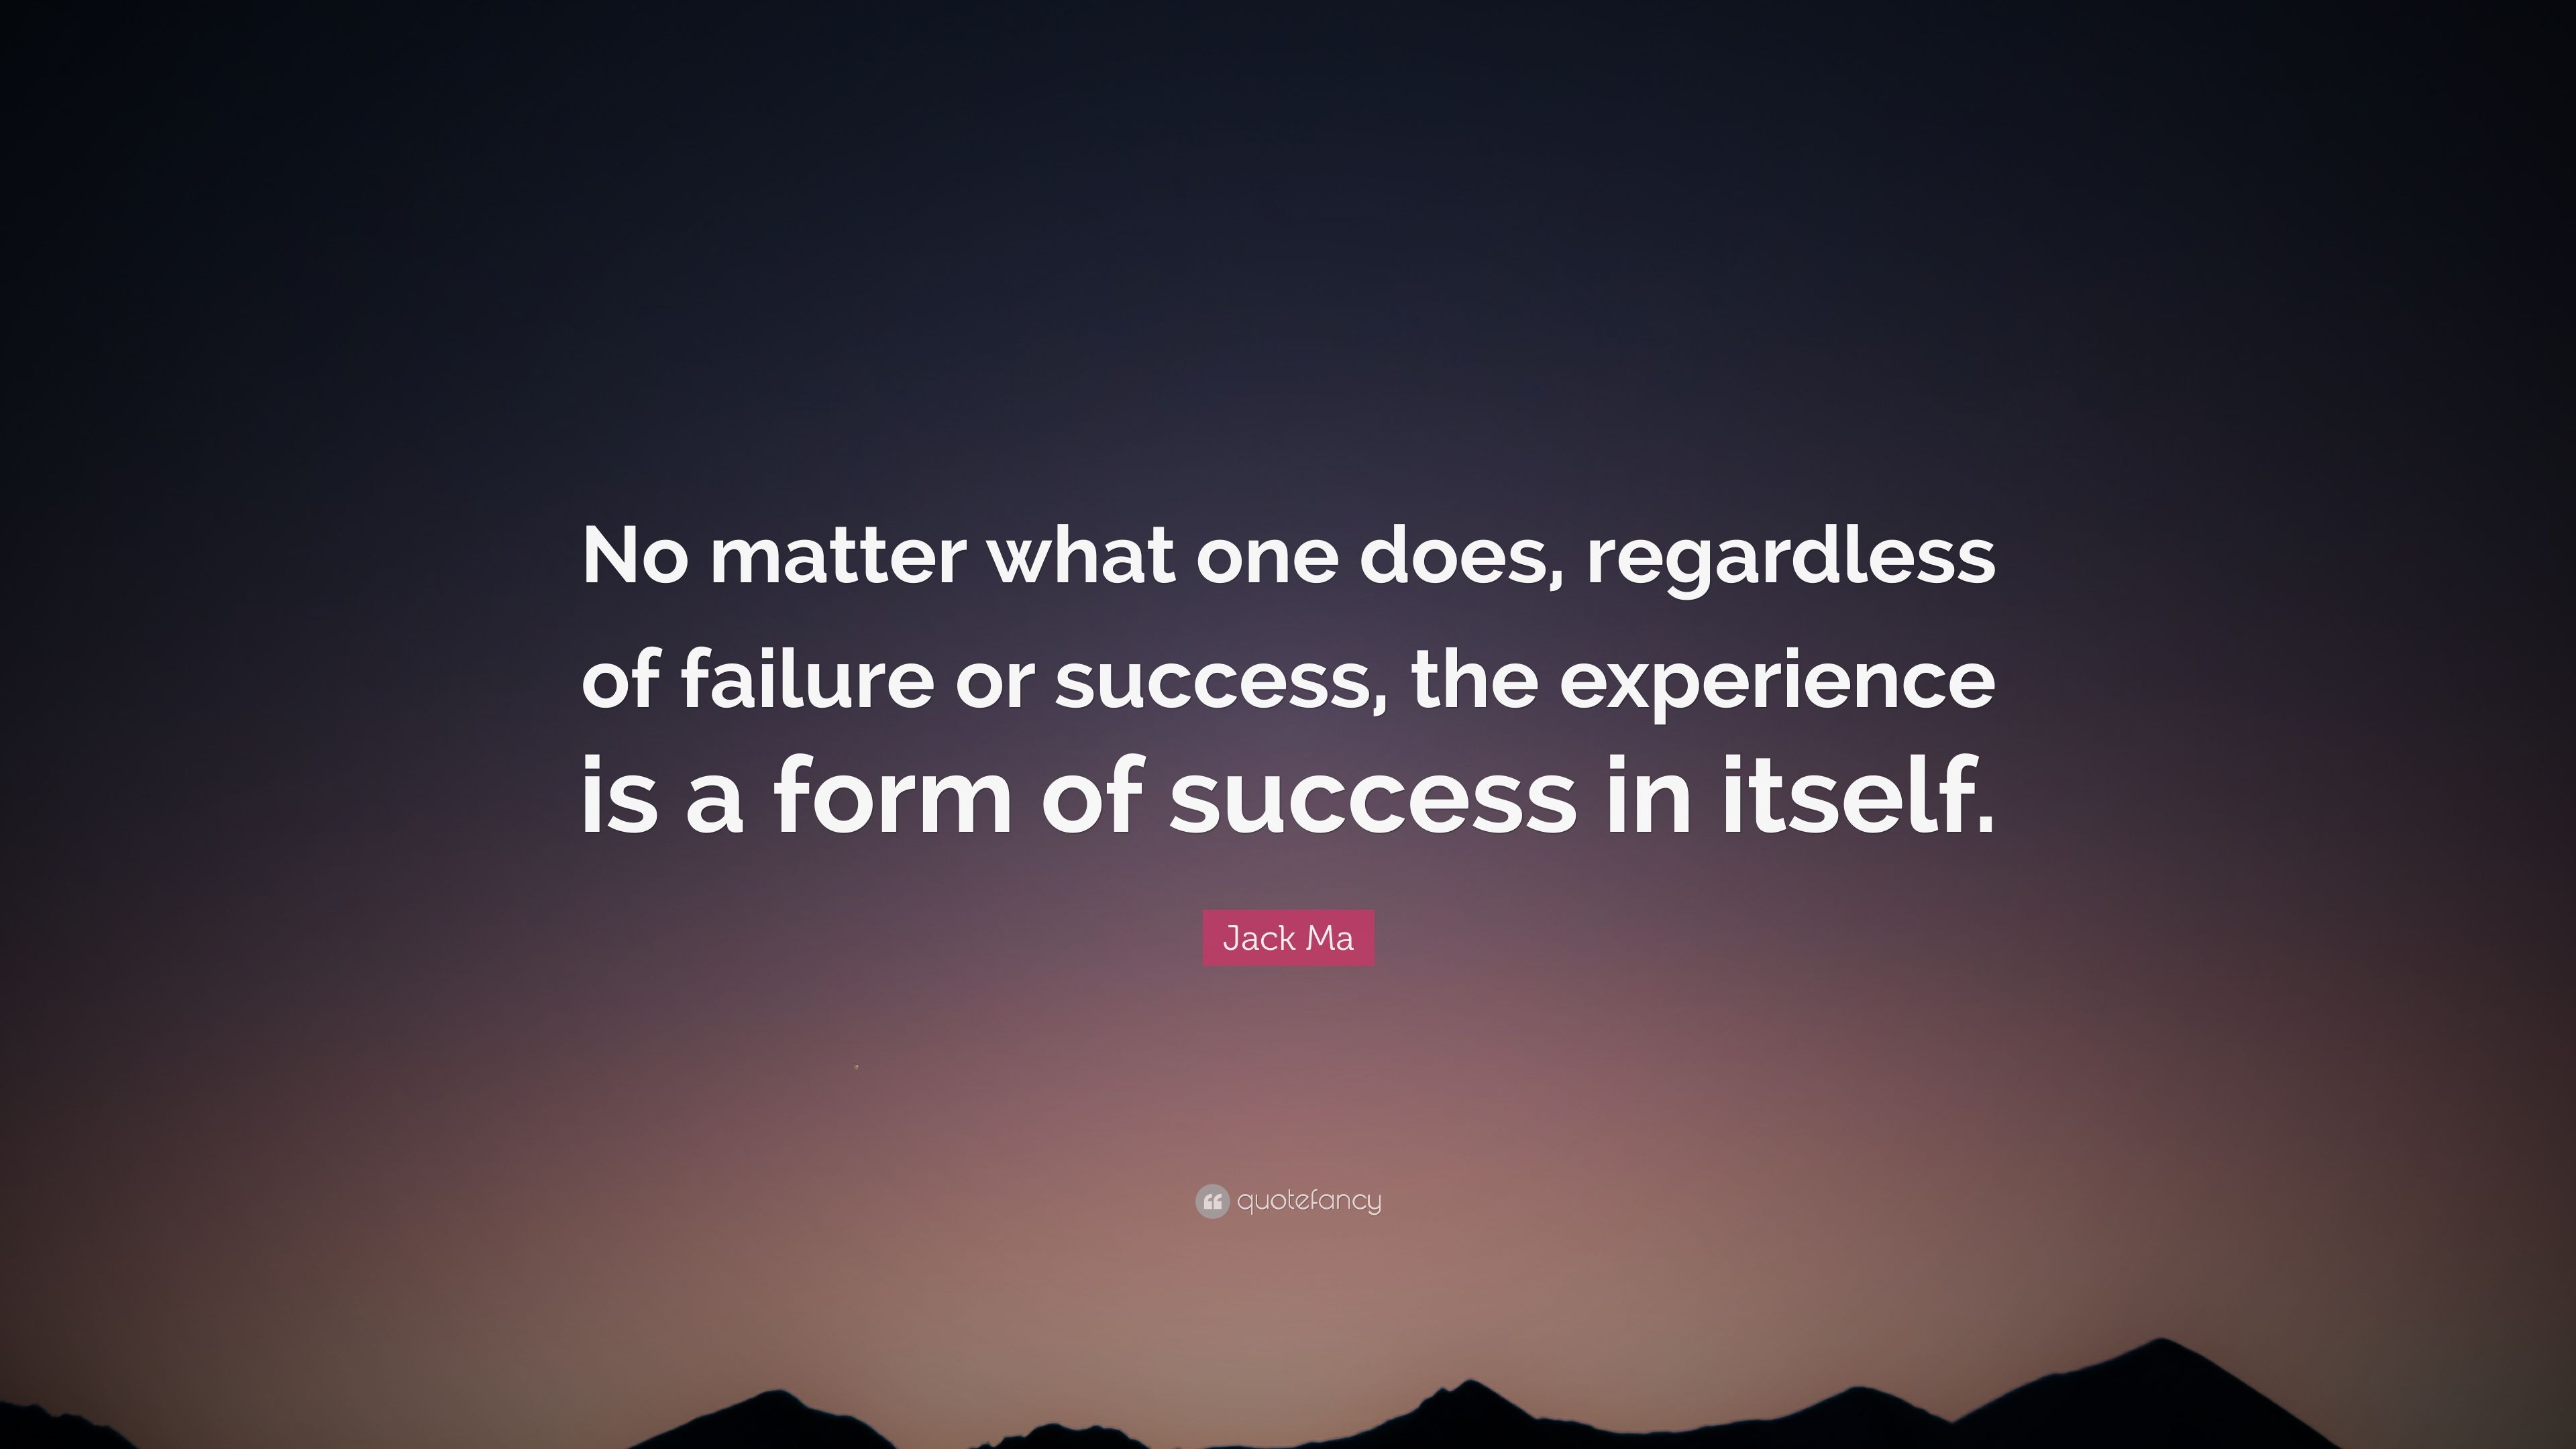 On the experience of failure